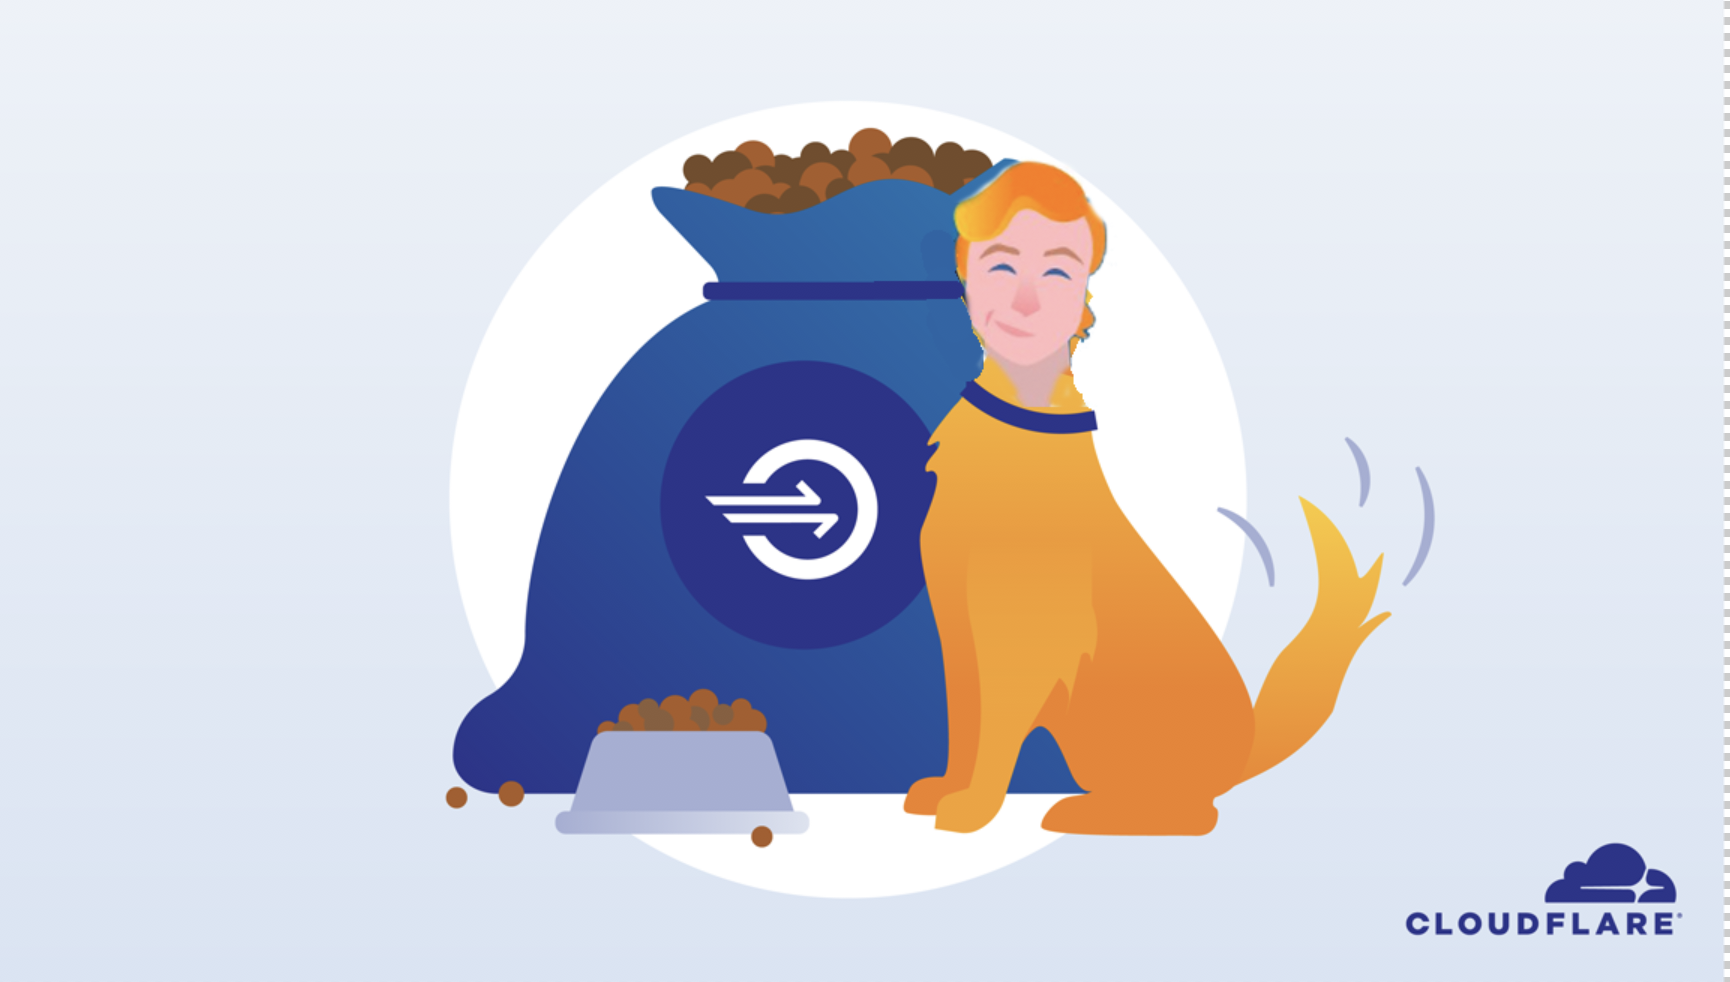 Dogfooding from Home: How Cloudflare Built our Cloud VPN Replacement